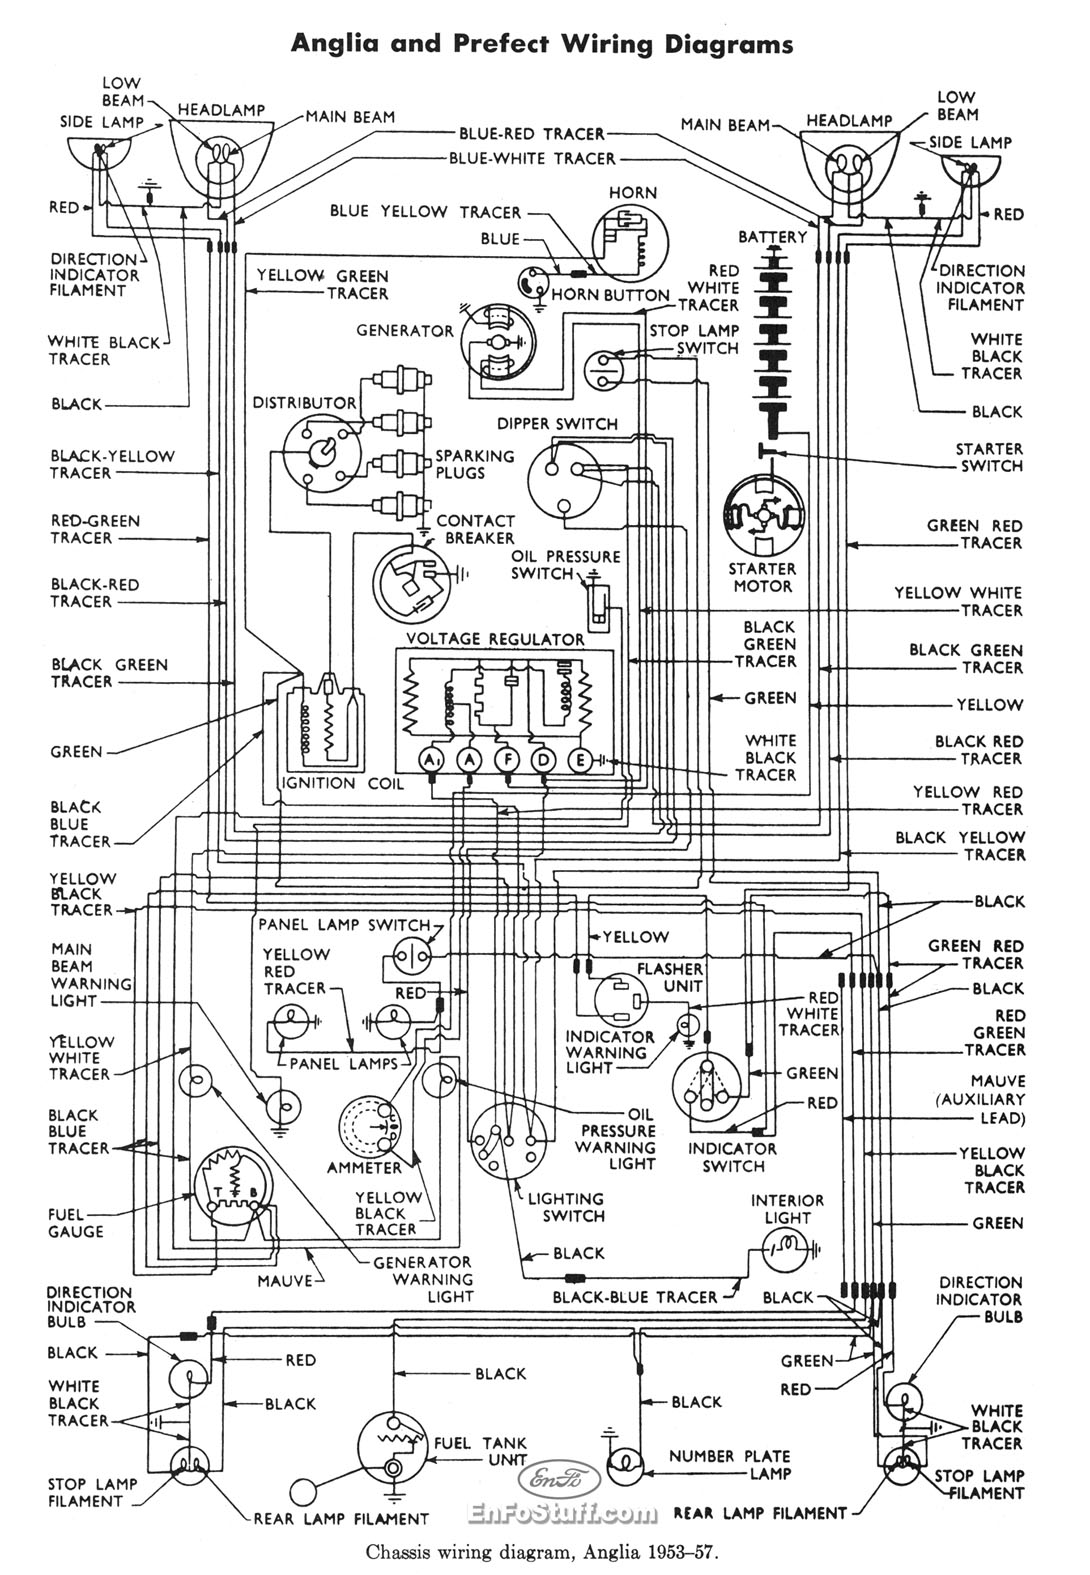 72 ford f100 dash wiring diagram of top hand 555 backhoe schematic old tractor